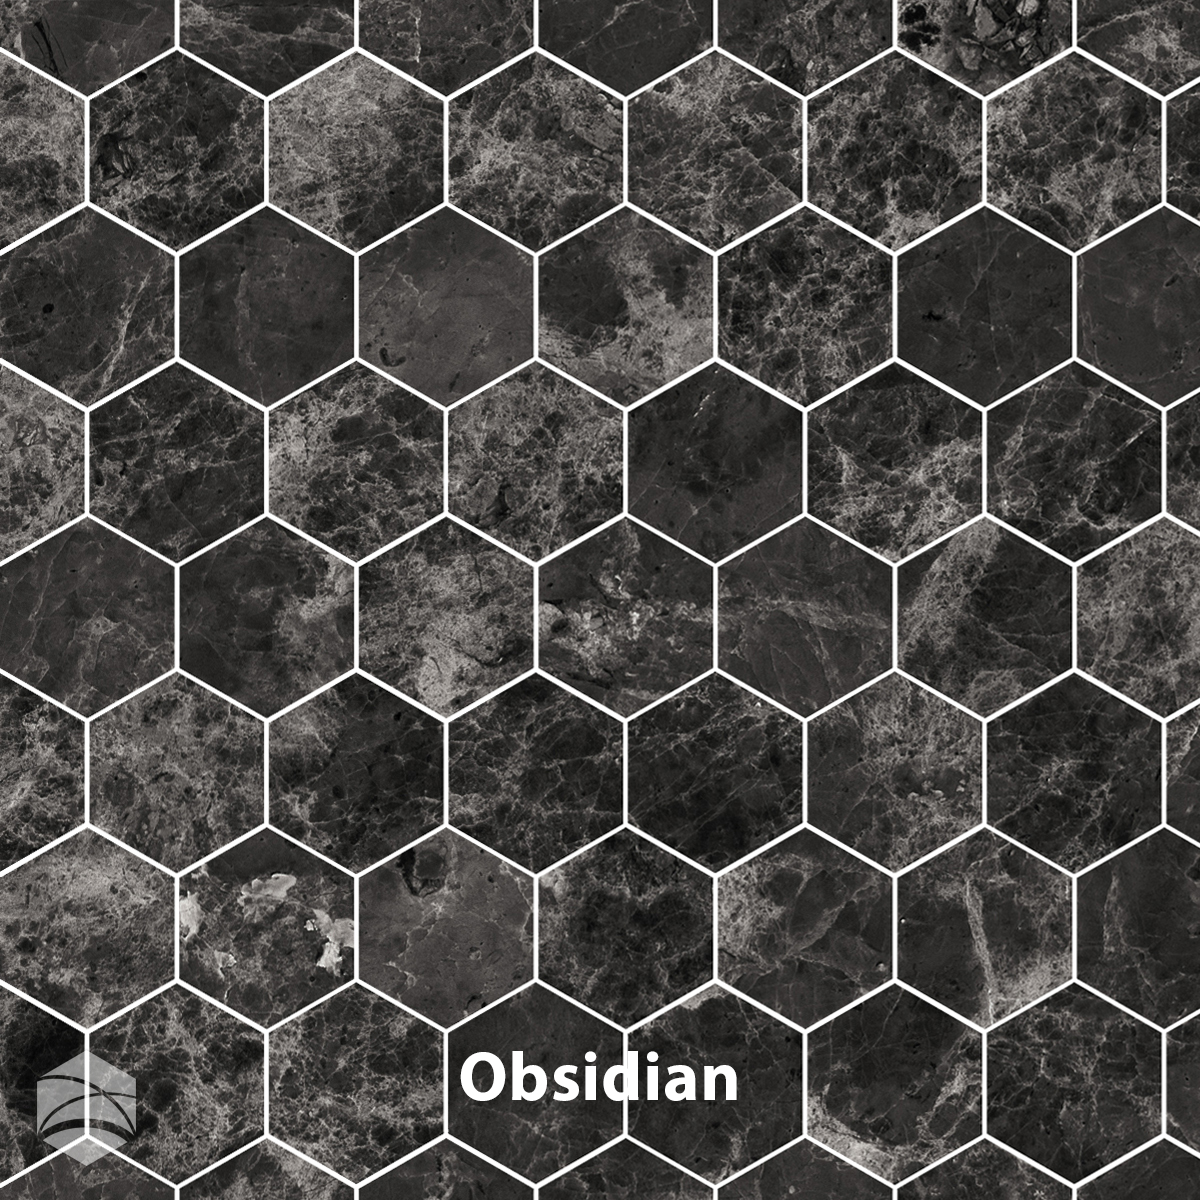 Obsidian_2 in hex_V2_12x12.jpg